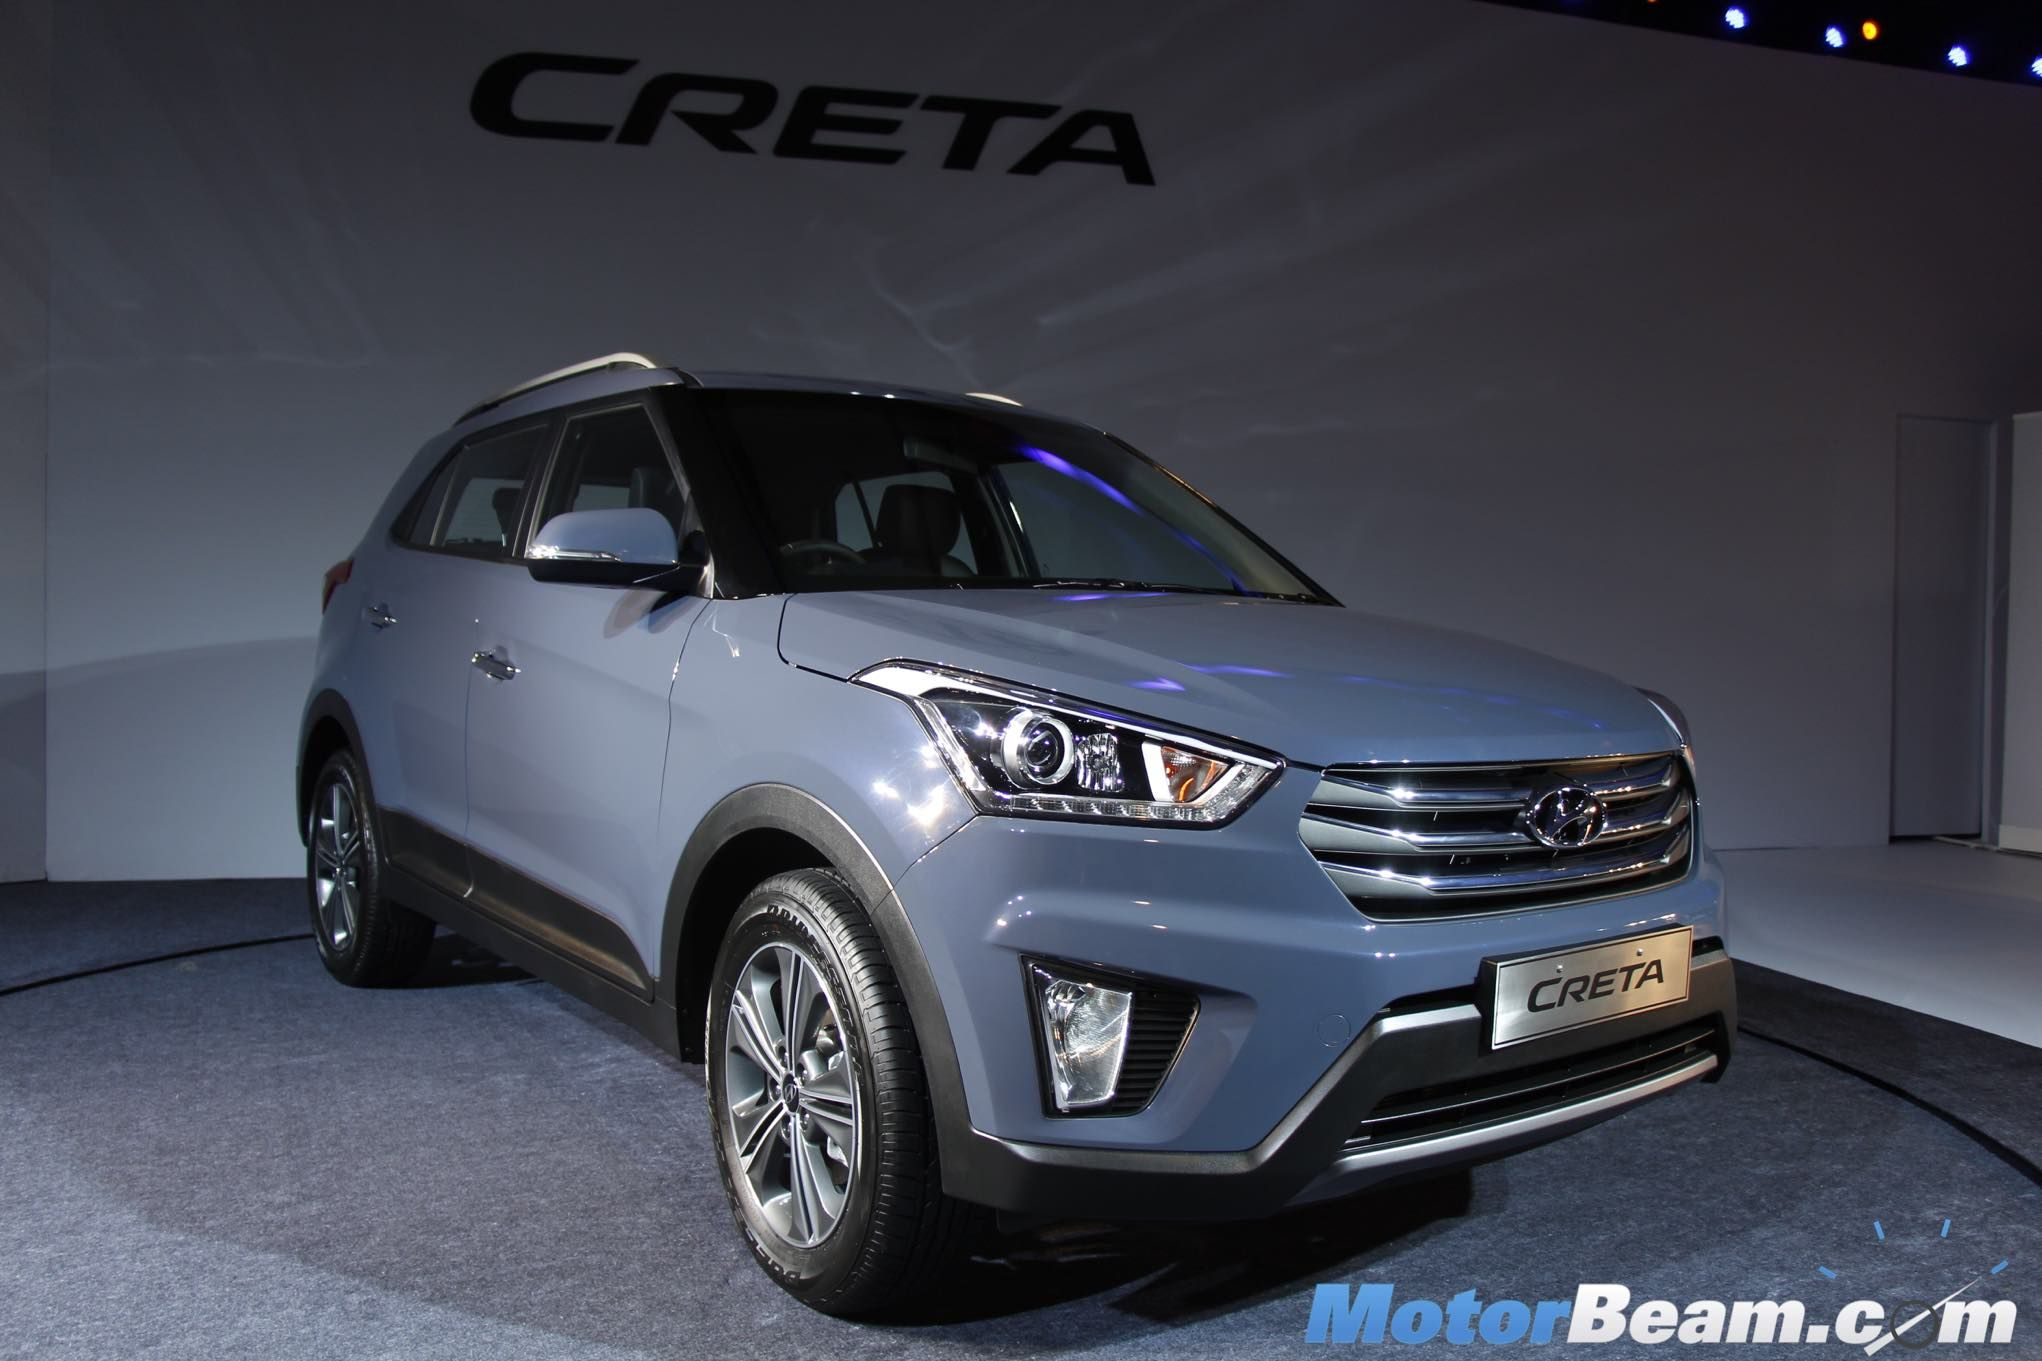 To Get The Info About Hyundai Creta Visit QuikrNewCars